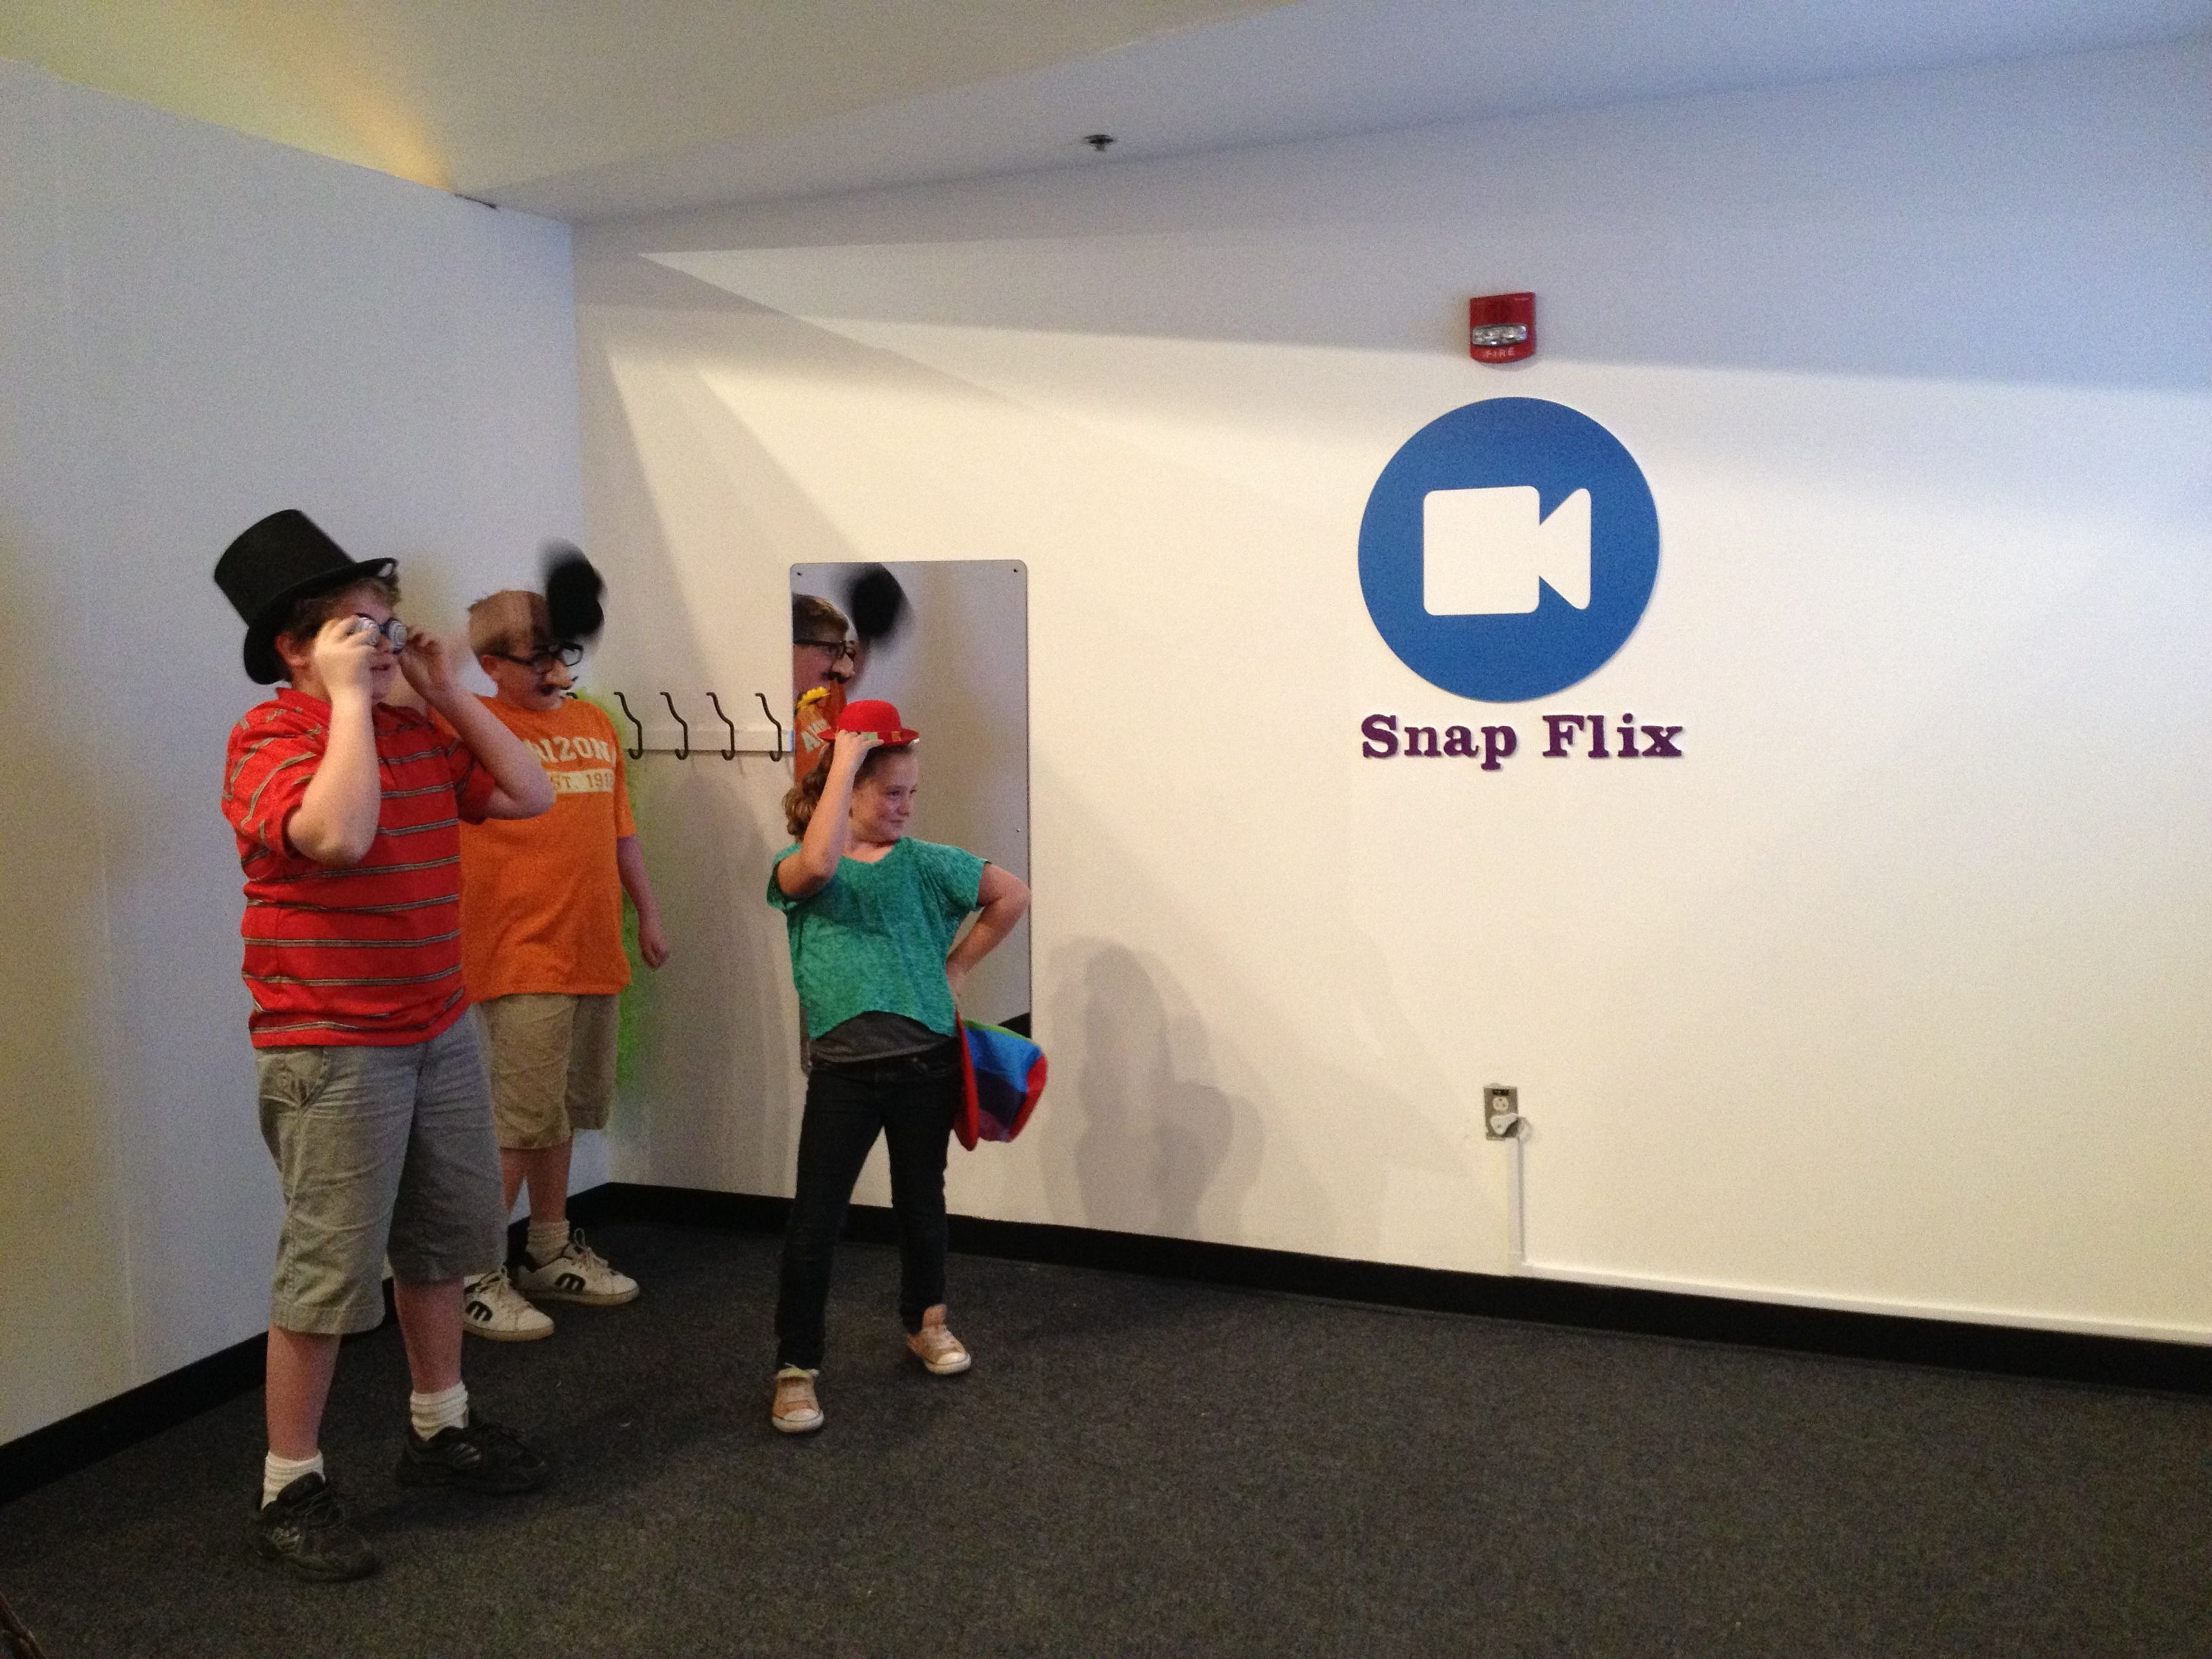 kids at the snap flix booth where they can record movies while in